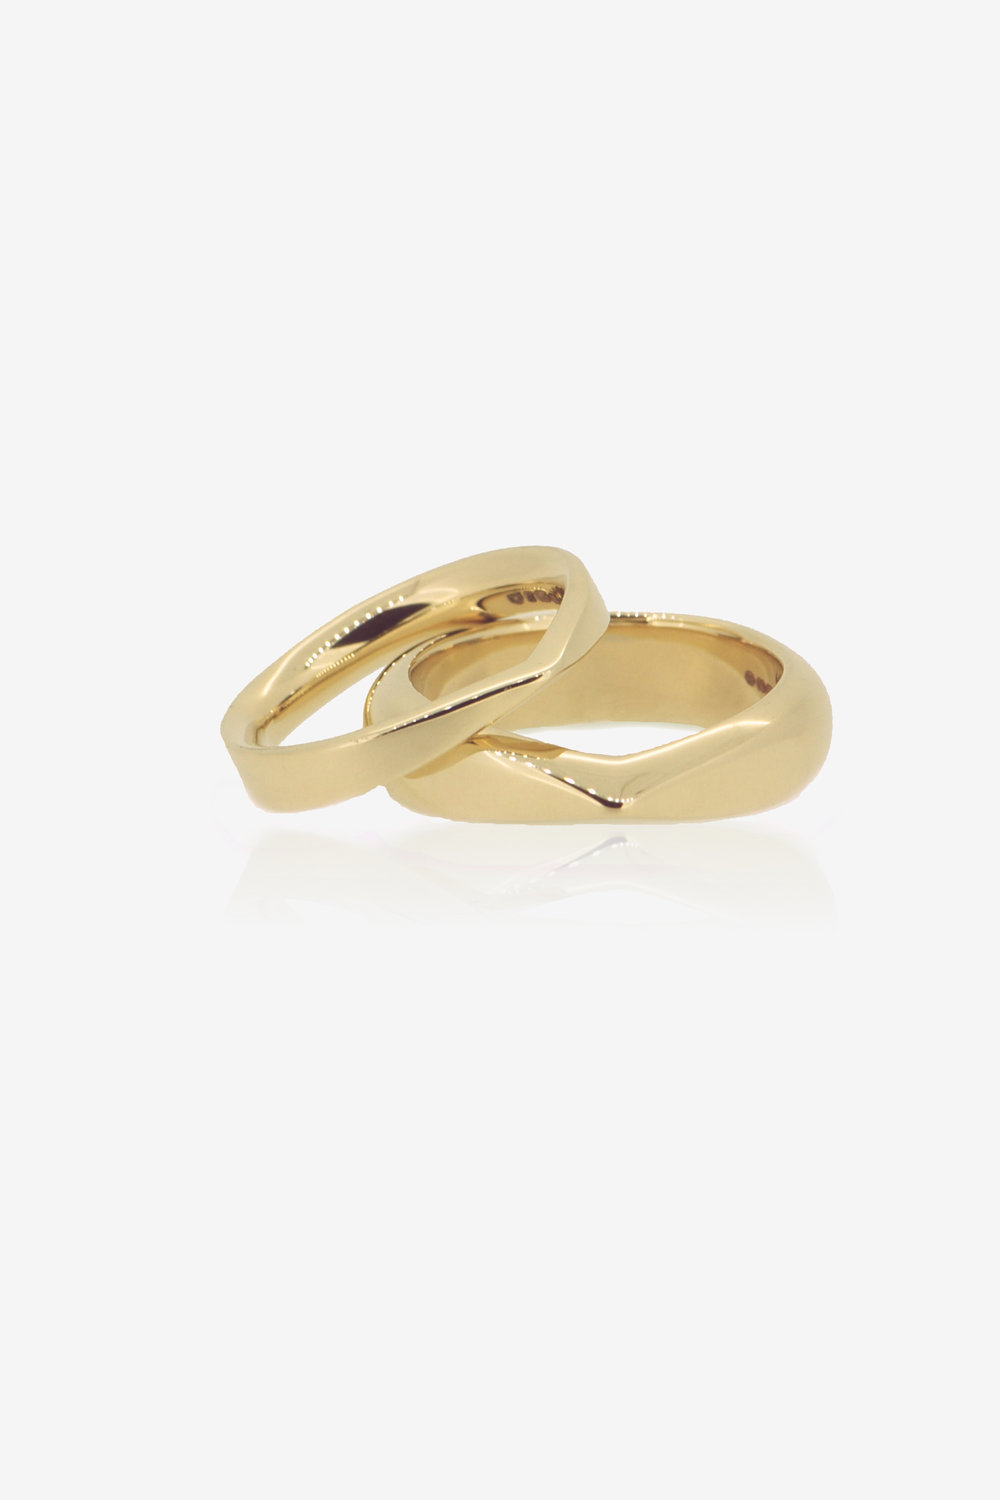 9K Fairmined Eco Gold Iskoras wedding bands